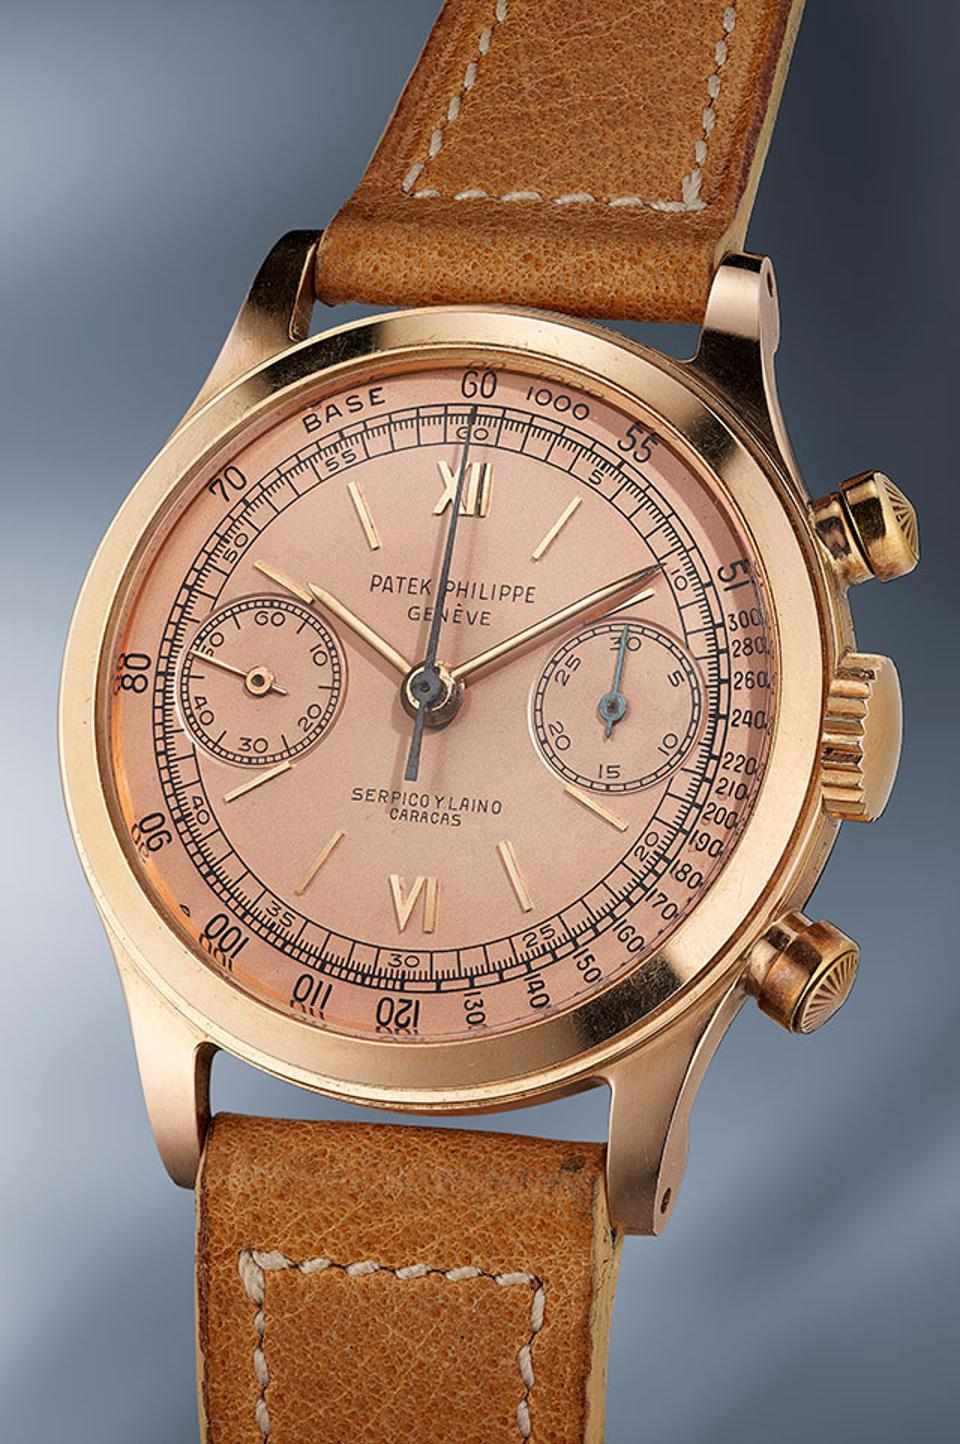 A rare pink gold Patek Philippe chronograph Reference 1463 with pink dial made in 1952 and retailed by Serpico y Laino.